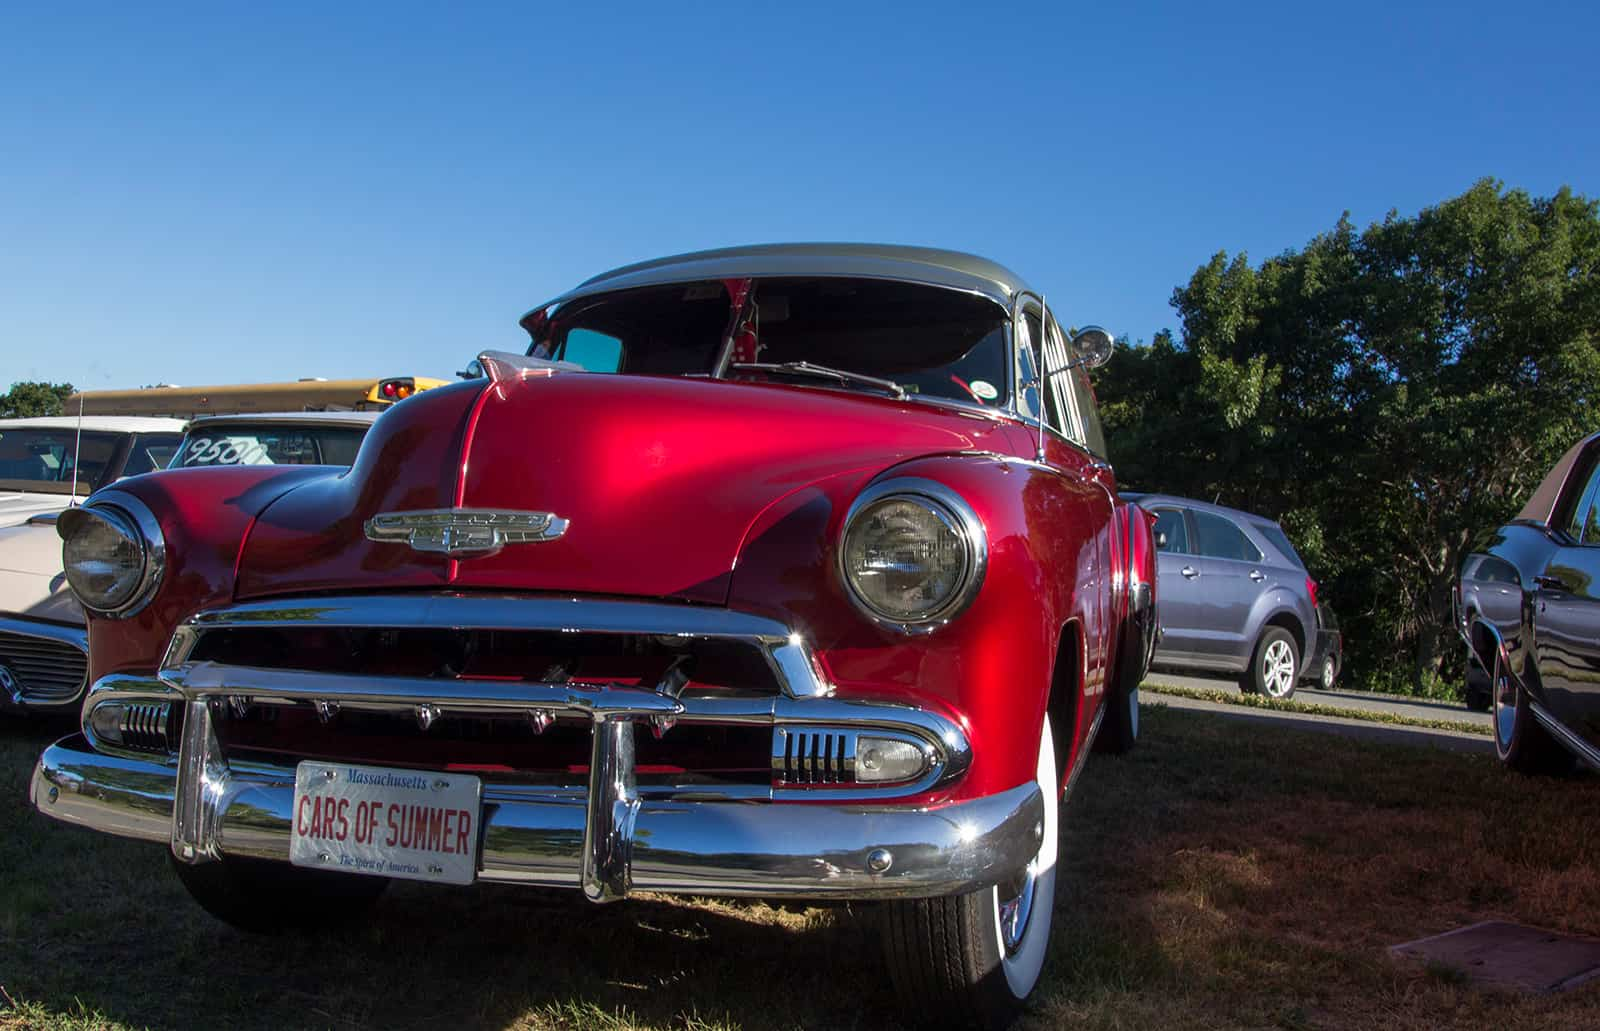 Cars of Summer Candy Apple Red 52 Panel Van